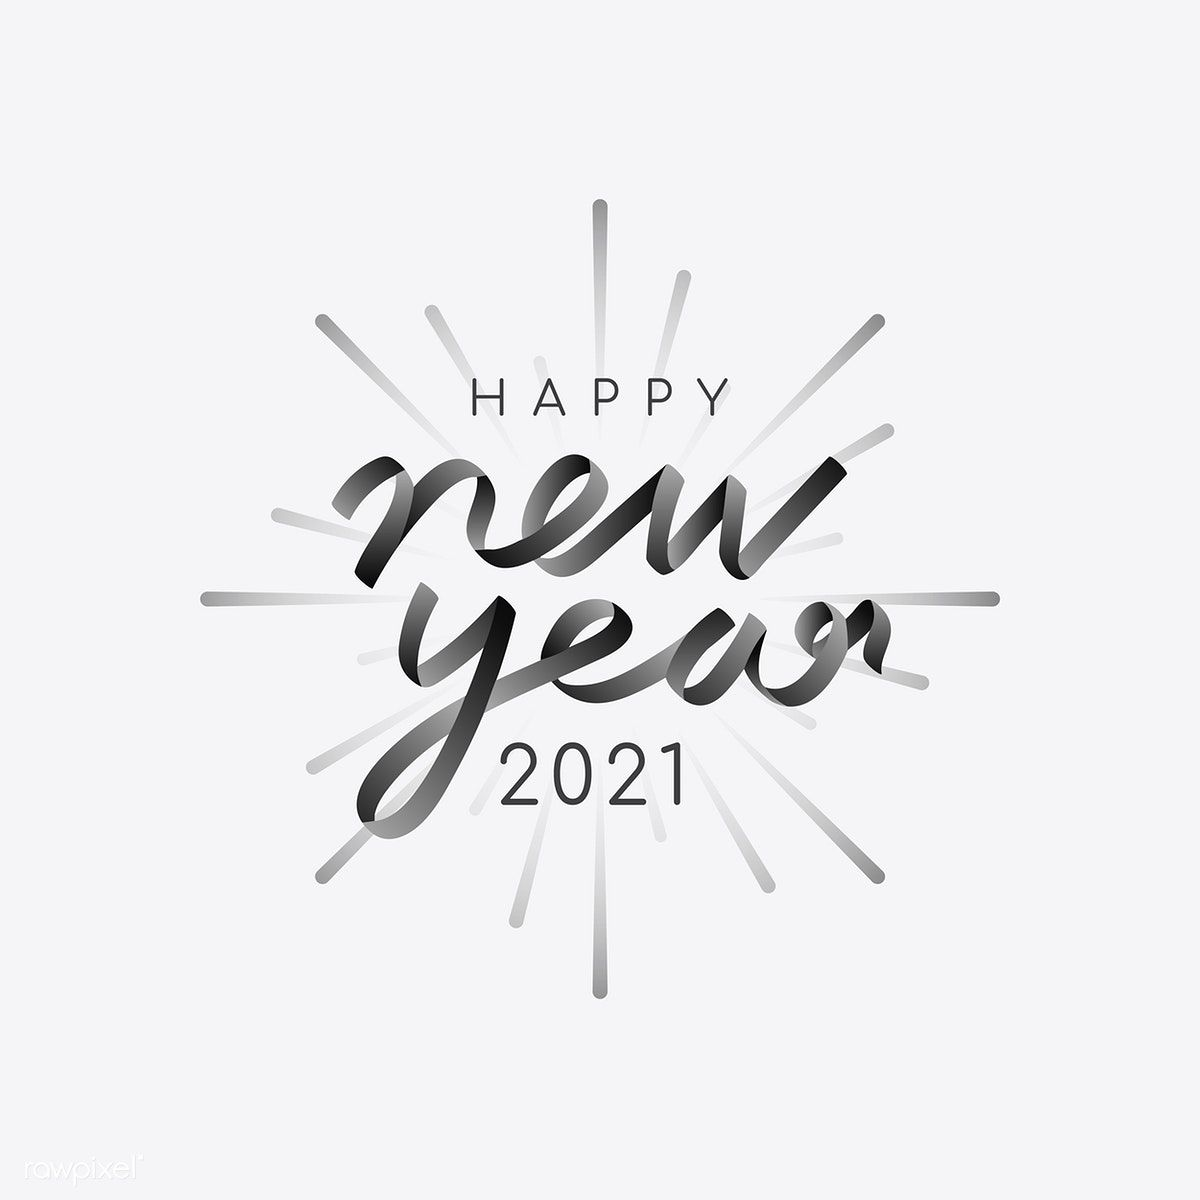 Happy New Year 2021 Vector Free Image By Rawpixel Com Ningzk V New Year Clipart Happy New Year Images New Year Doodle